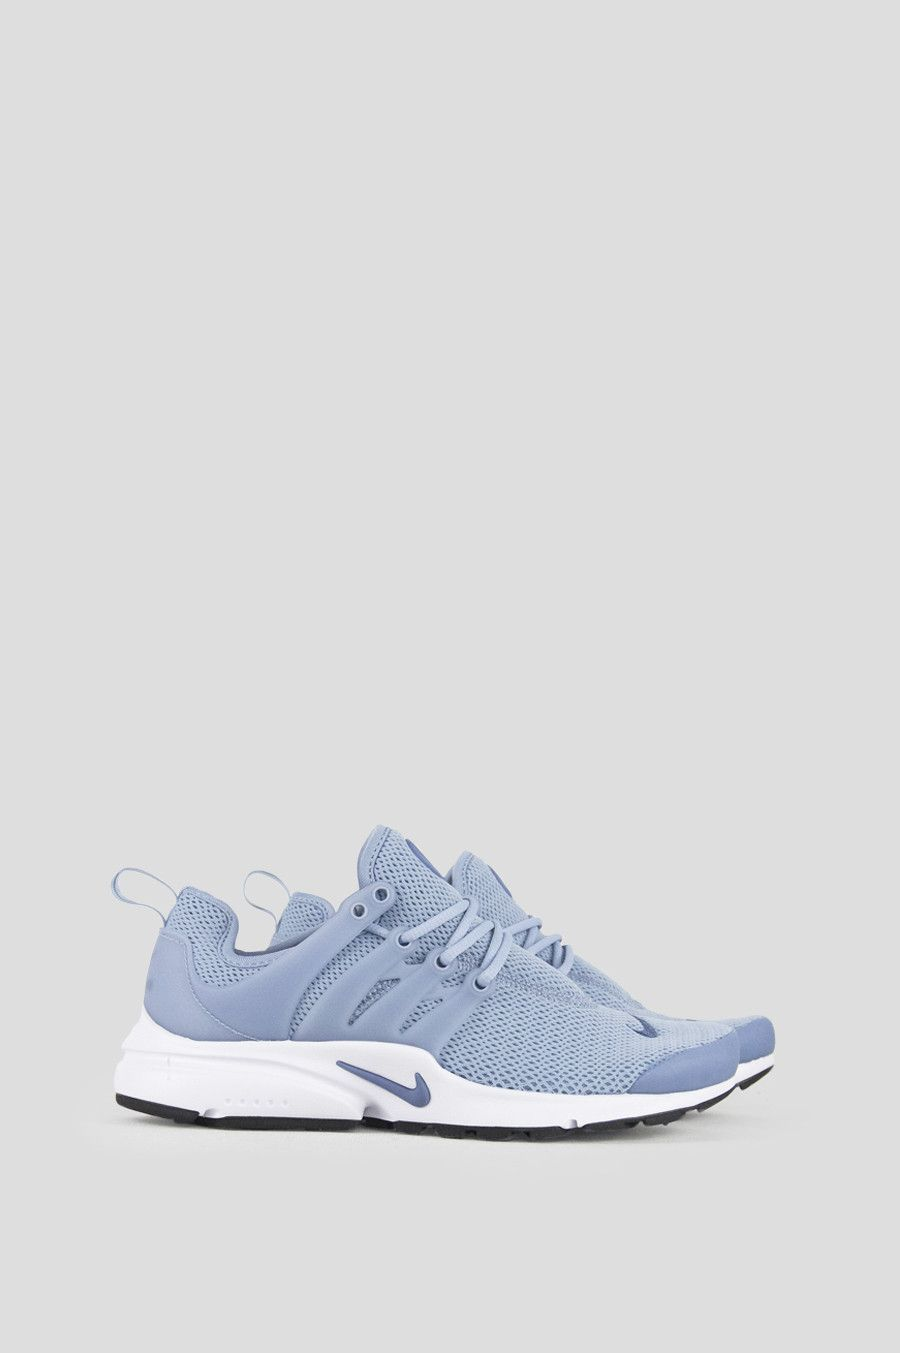 new arrival 70e5e 2cf4b The Nike Air Presto Women s Shoe is inspired by the comfort and minimalism  of a classic T-shirt for lightweight everyday comfort. - Product Code   878068-400 ...